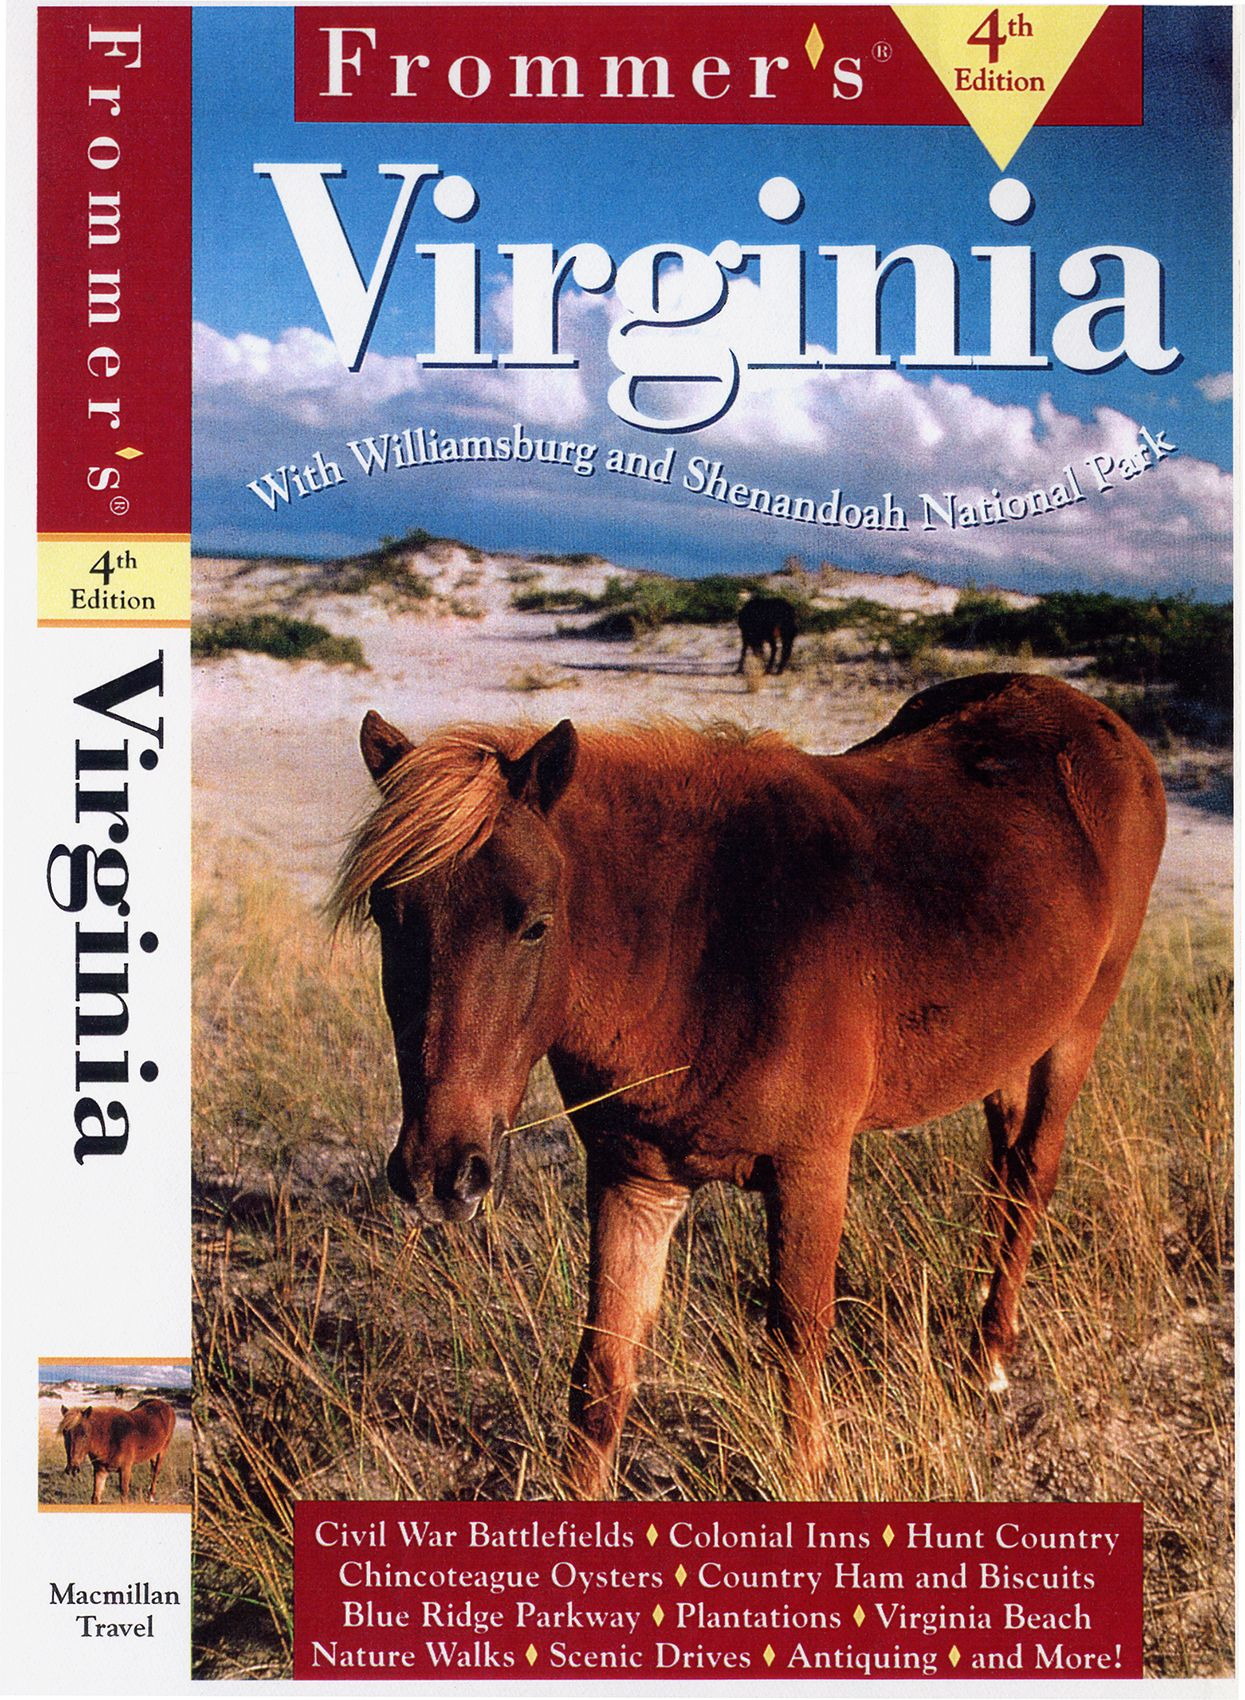 Frommer'sVirginia4thEdition.jpg